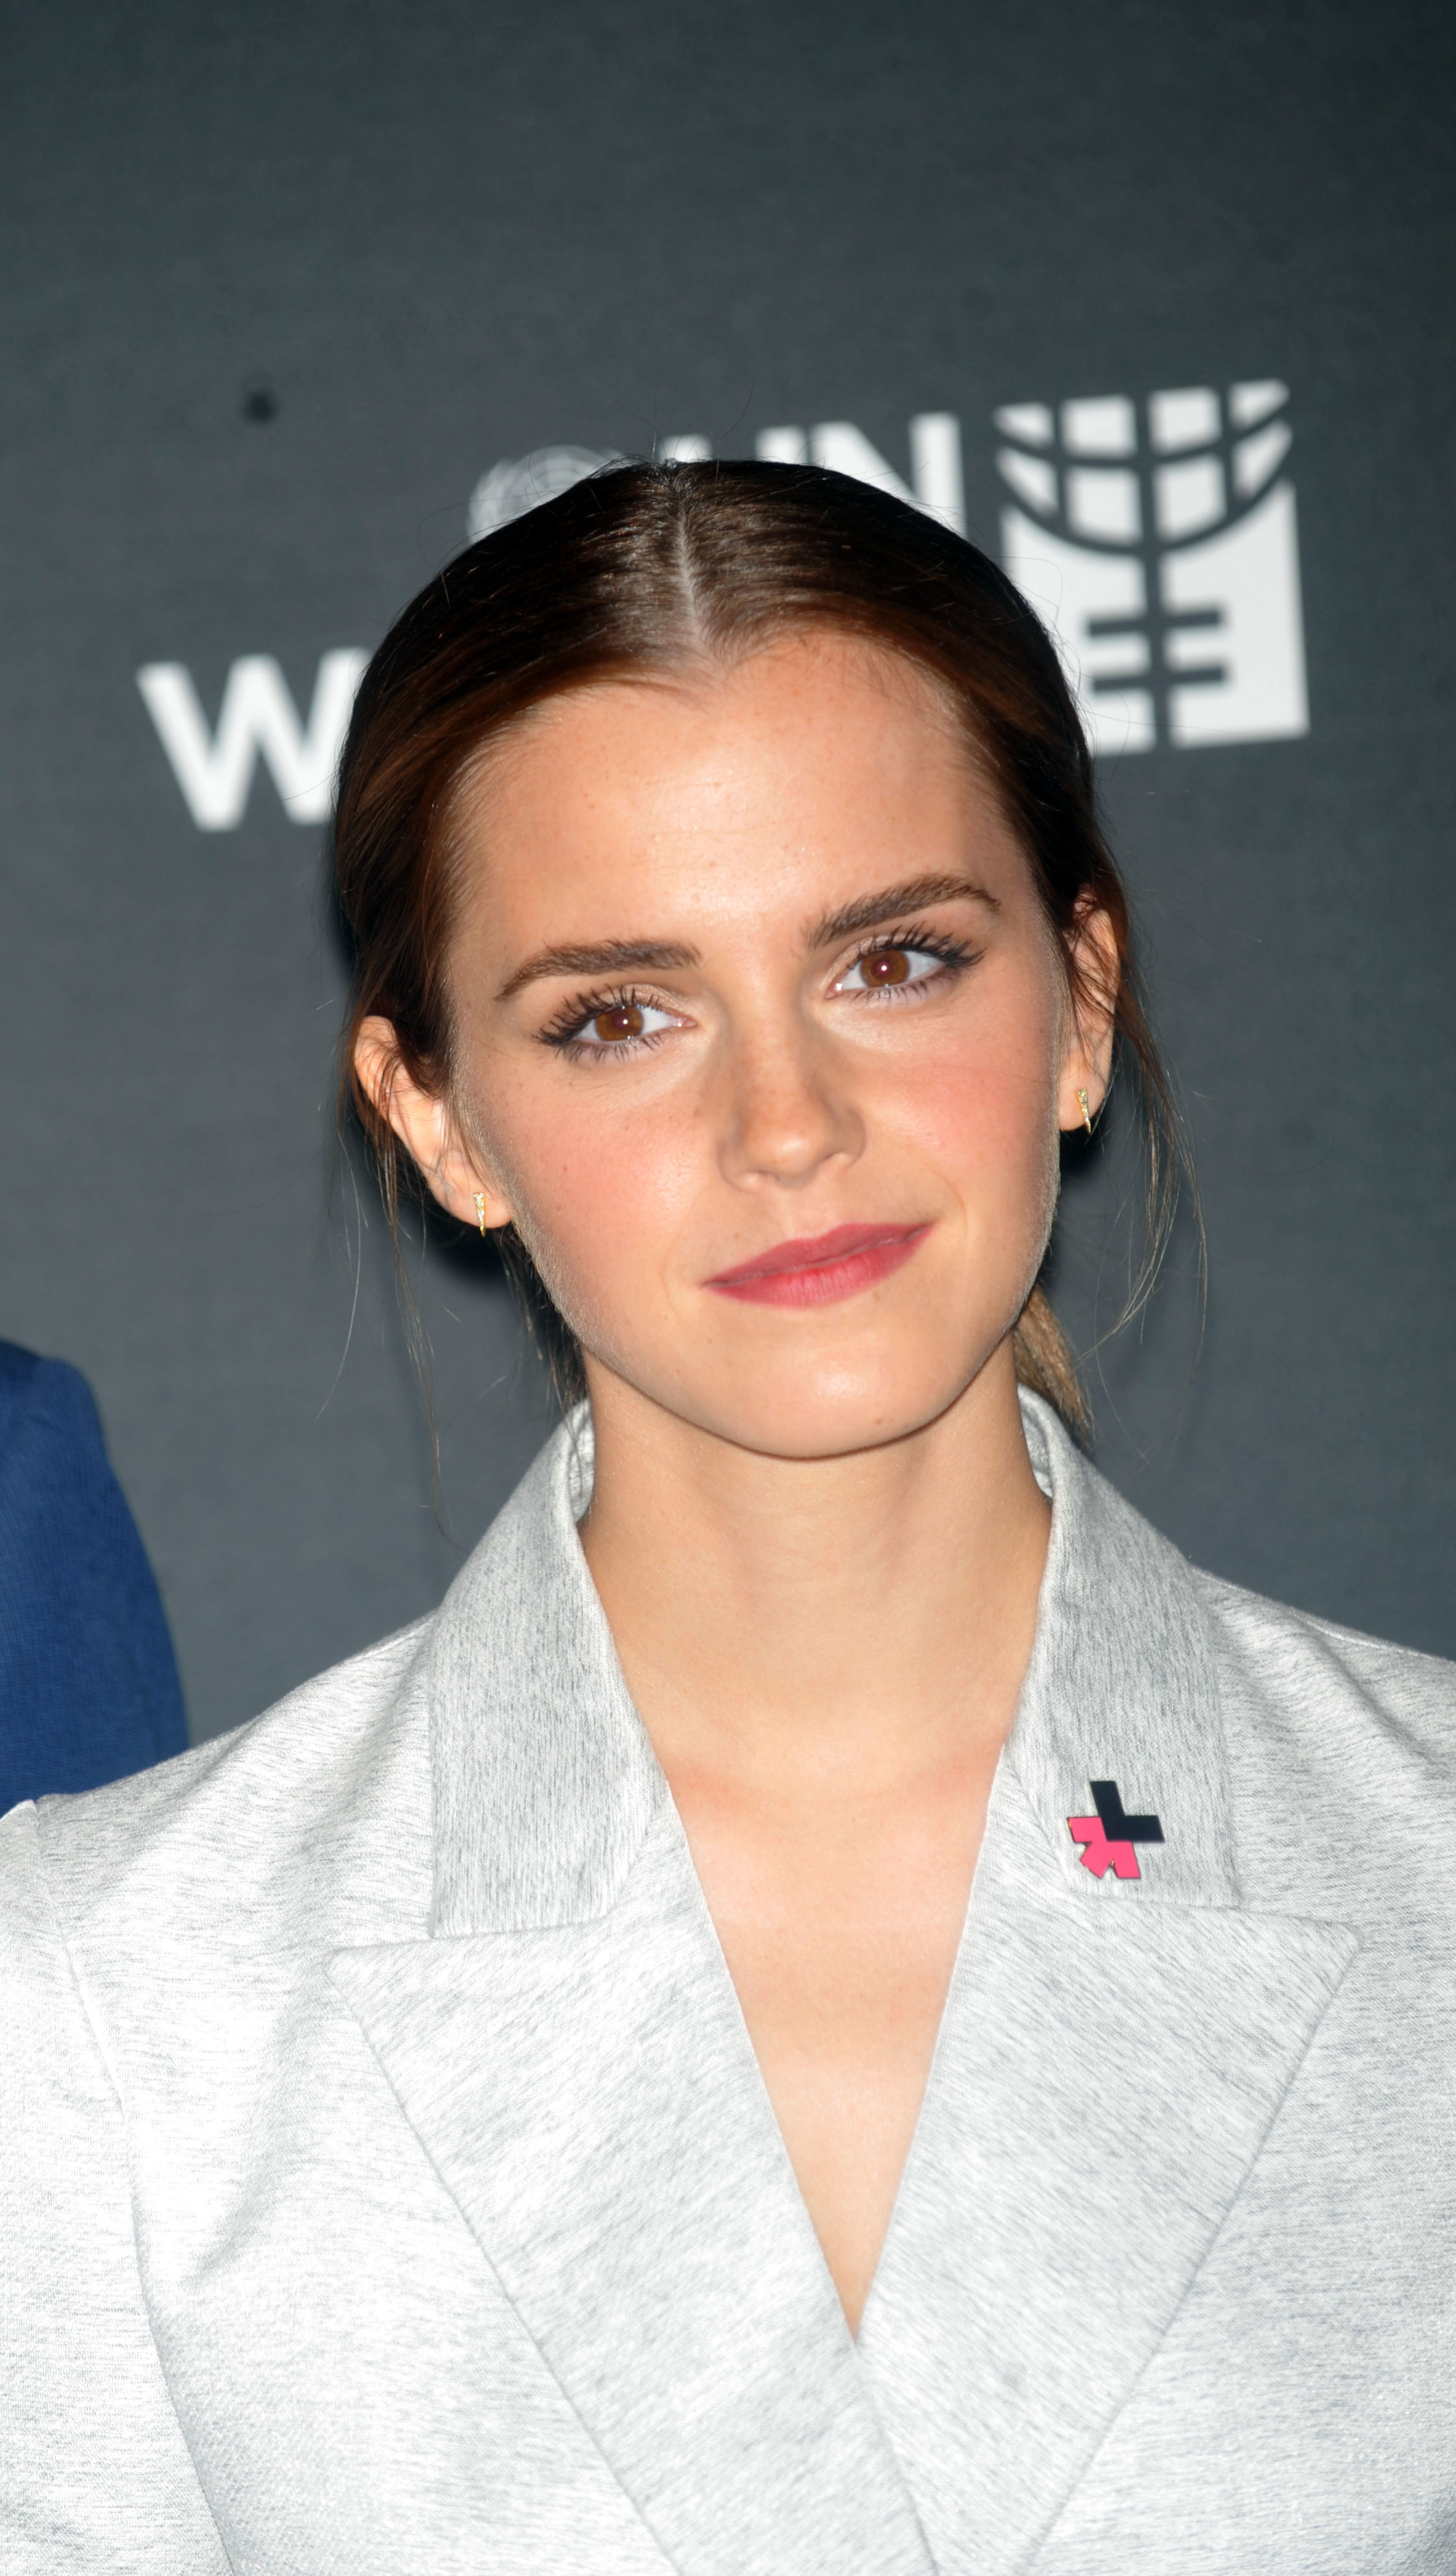 Emma Watson attends the launch of the HeForShe Campaign at the United Nations on September 20, 2014 in New York City.  (Steve Sands/WireImage)